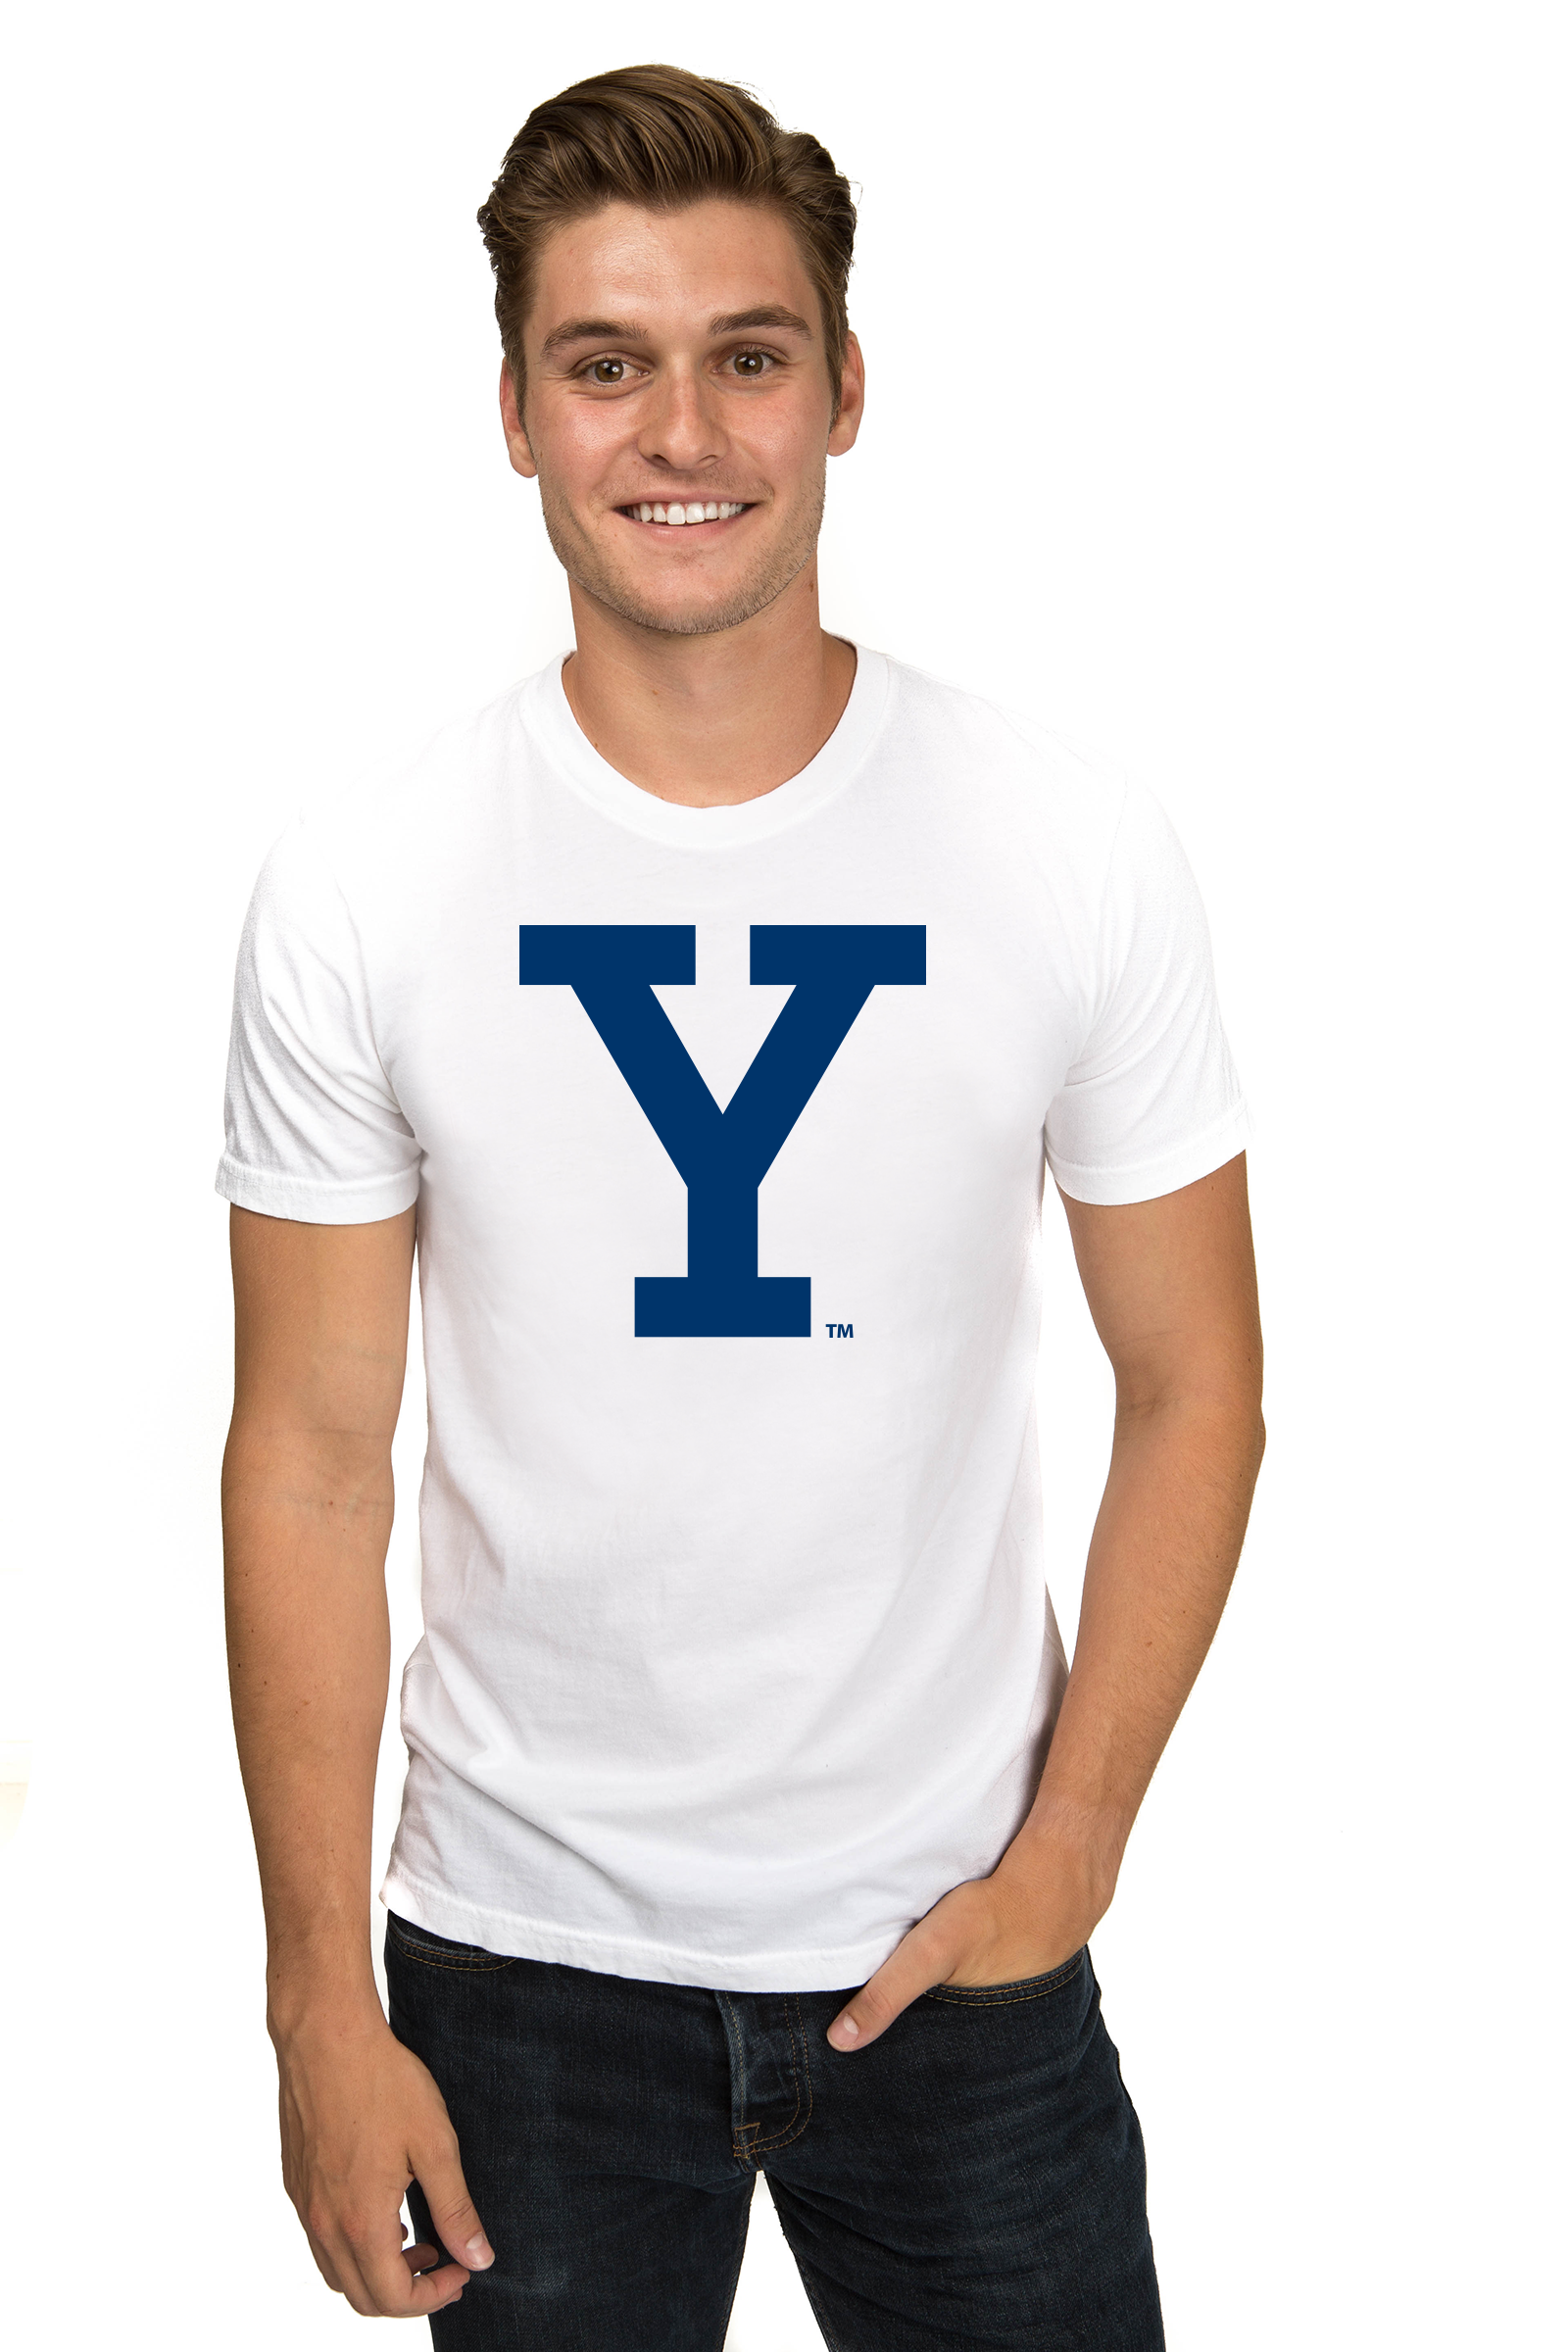 YALE UNIVERSITY Bulldogs Men's Organic Tee